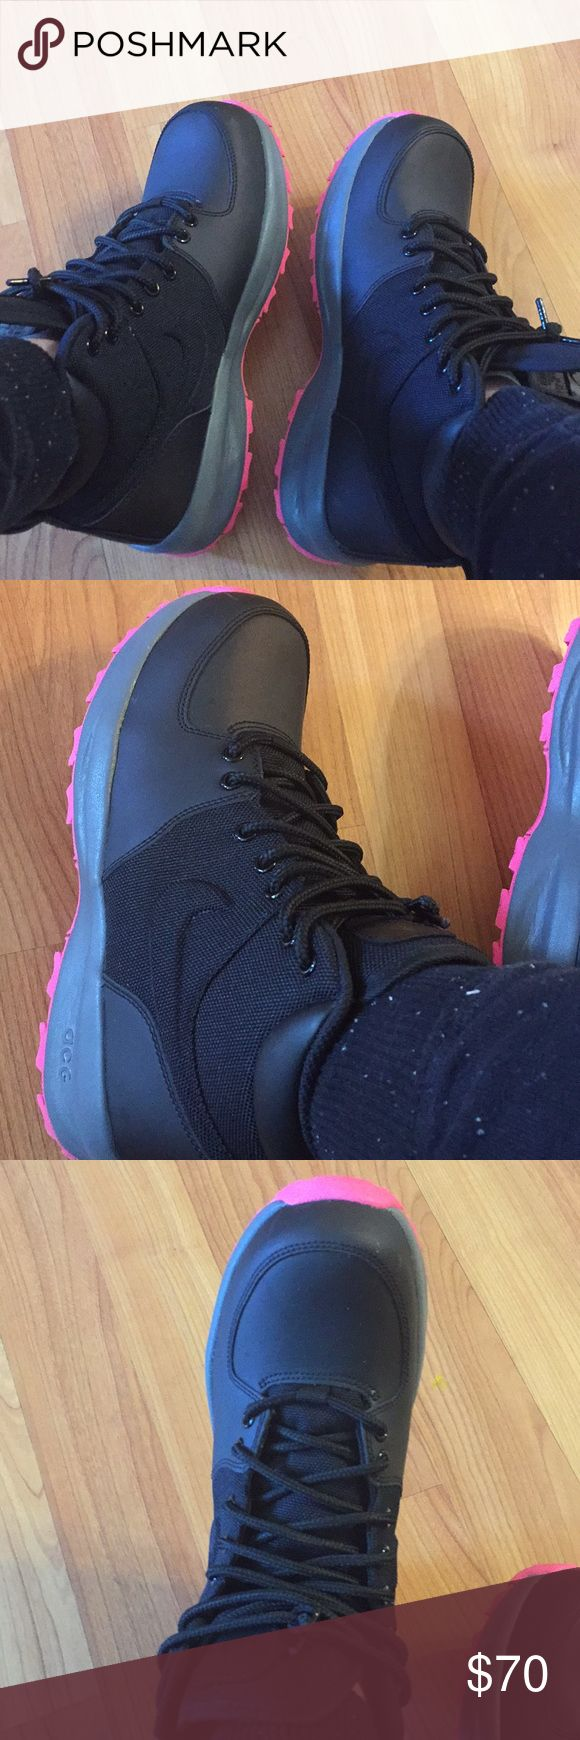 Nike acg boot Brand new with box. Wore twice but they are a bit big on me. Nike ACG Shoes Winter & Rain Boots